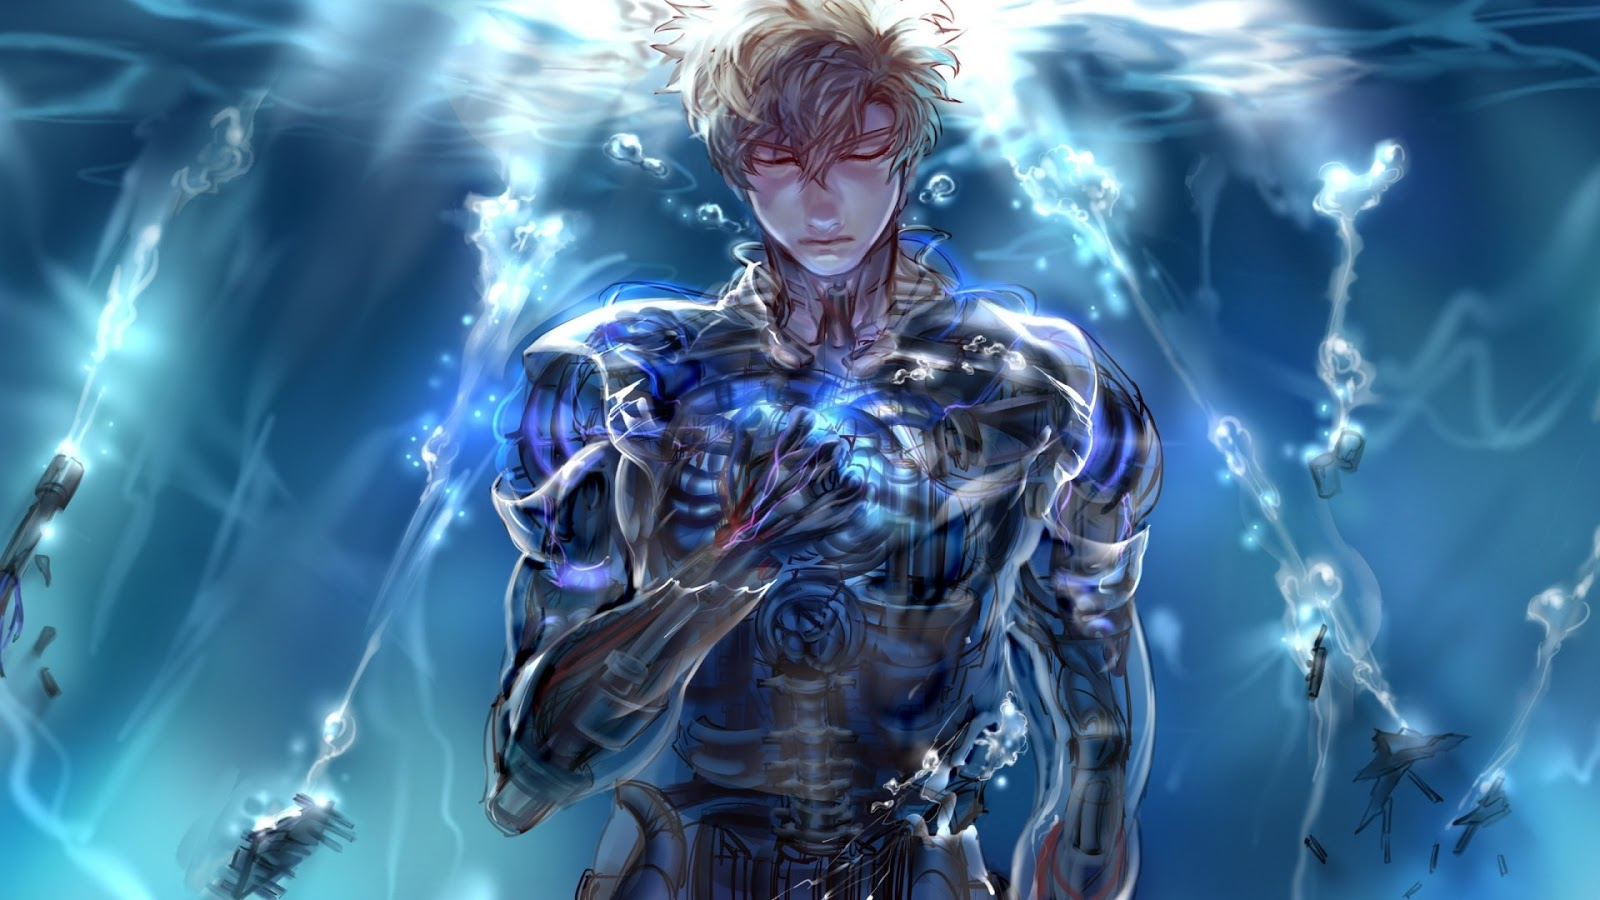 ANIME - WALLPAPER - GAMES: One Punch Man